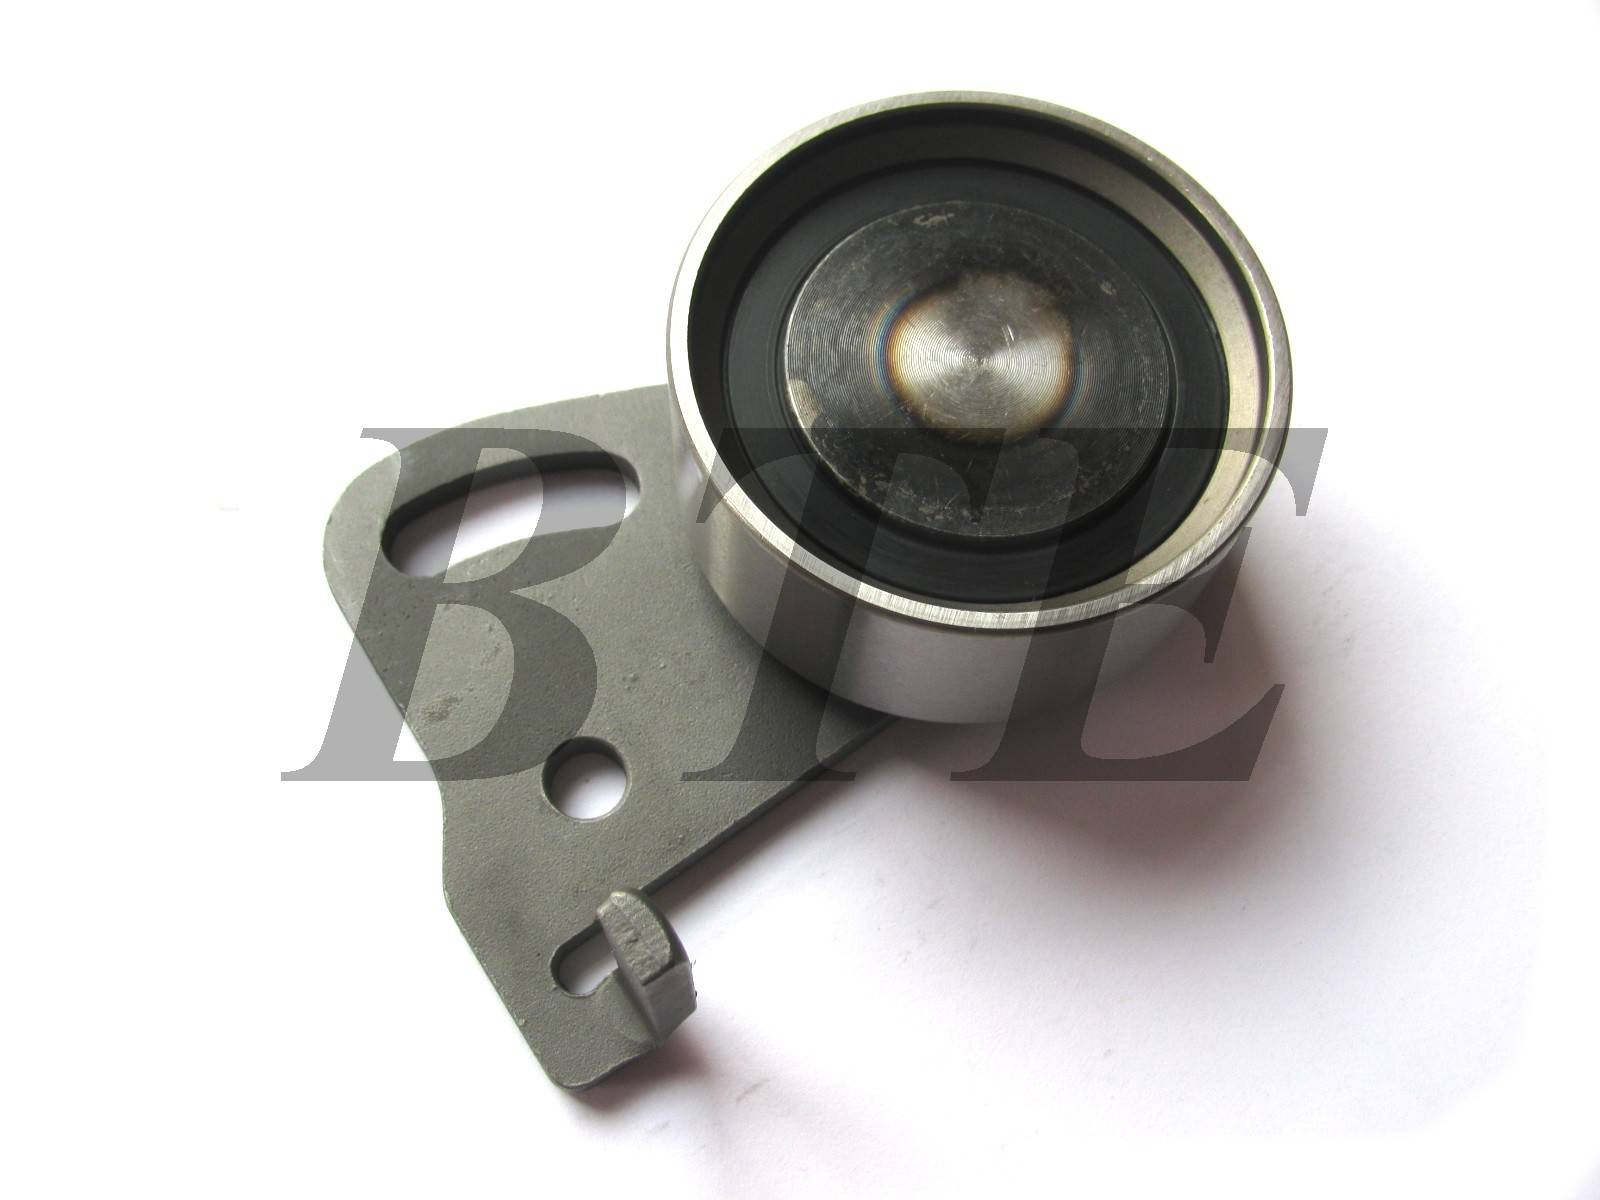 belt tensioner pulley for TIMKEN GMB TKR9021 GT90890 VKM72200 56802 531020920